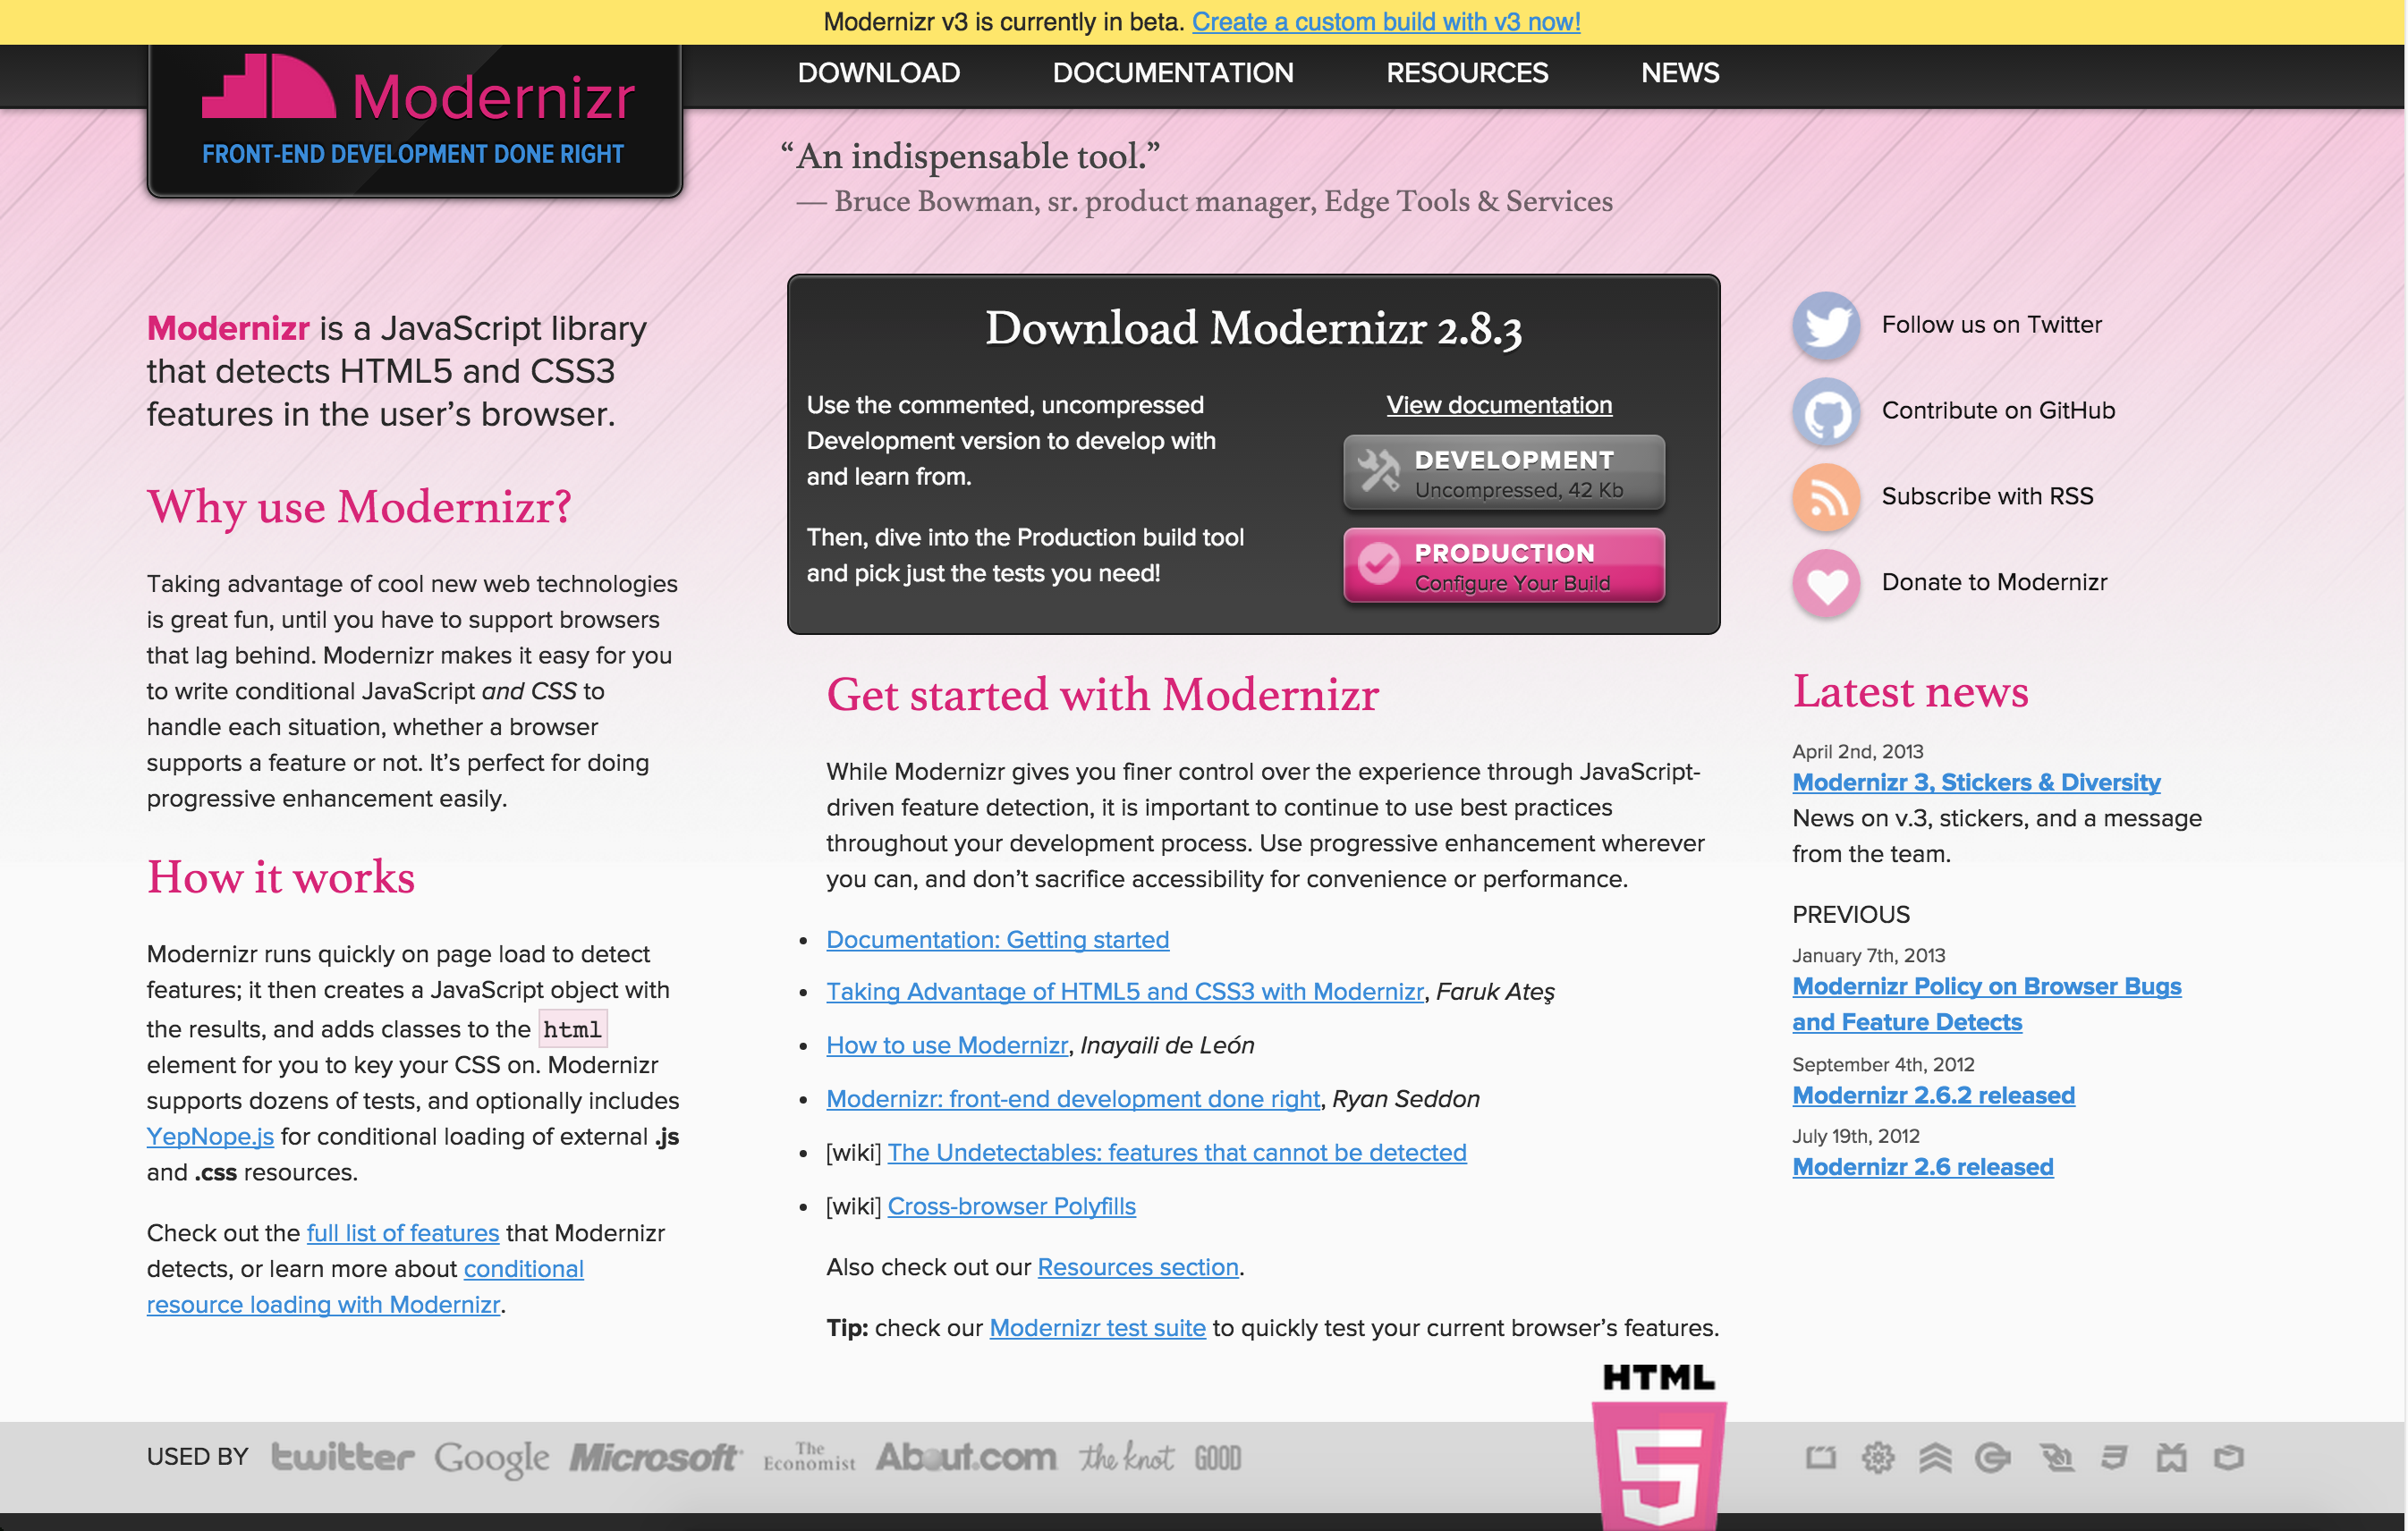 Modernizr Is A Javascript Library That Detects Html5 And Css3 Features In The User S Browser Web Development Design Web Design Web Design Tools